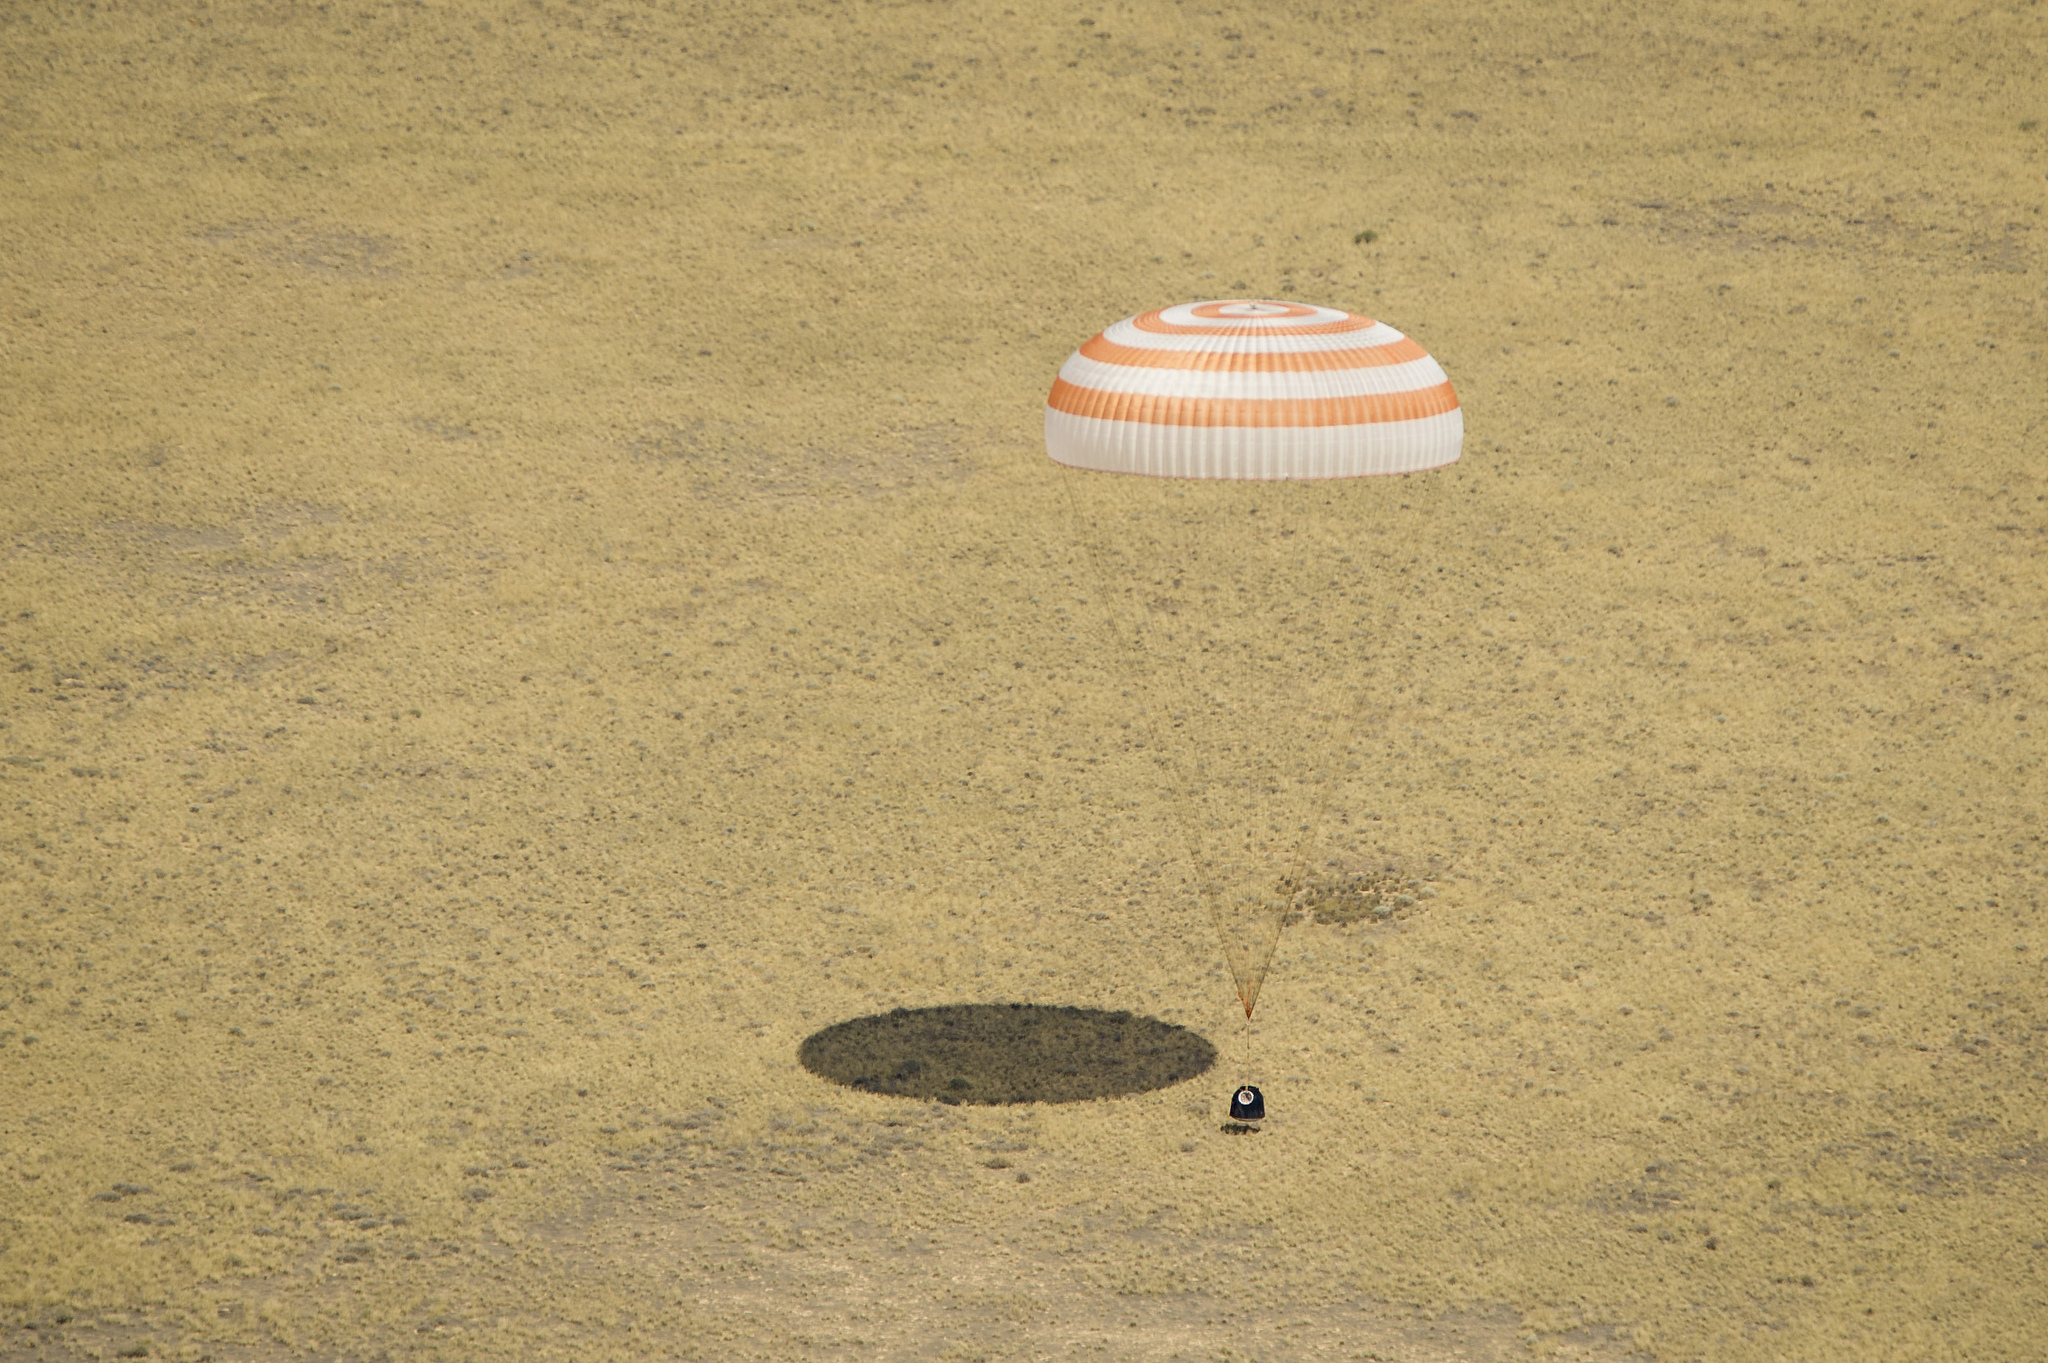 Expedition 31: Seconds Before Landing